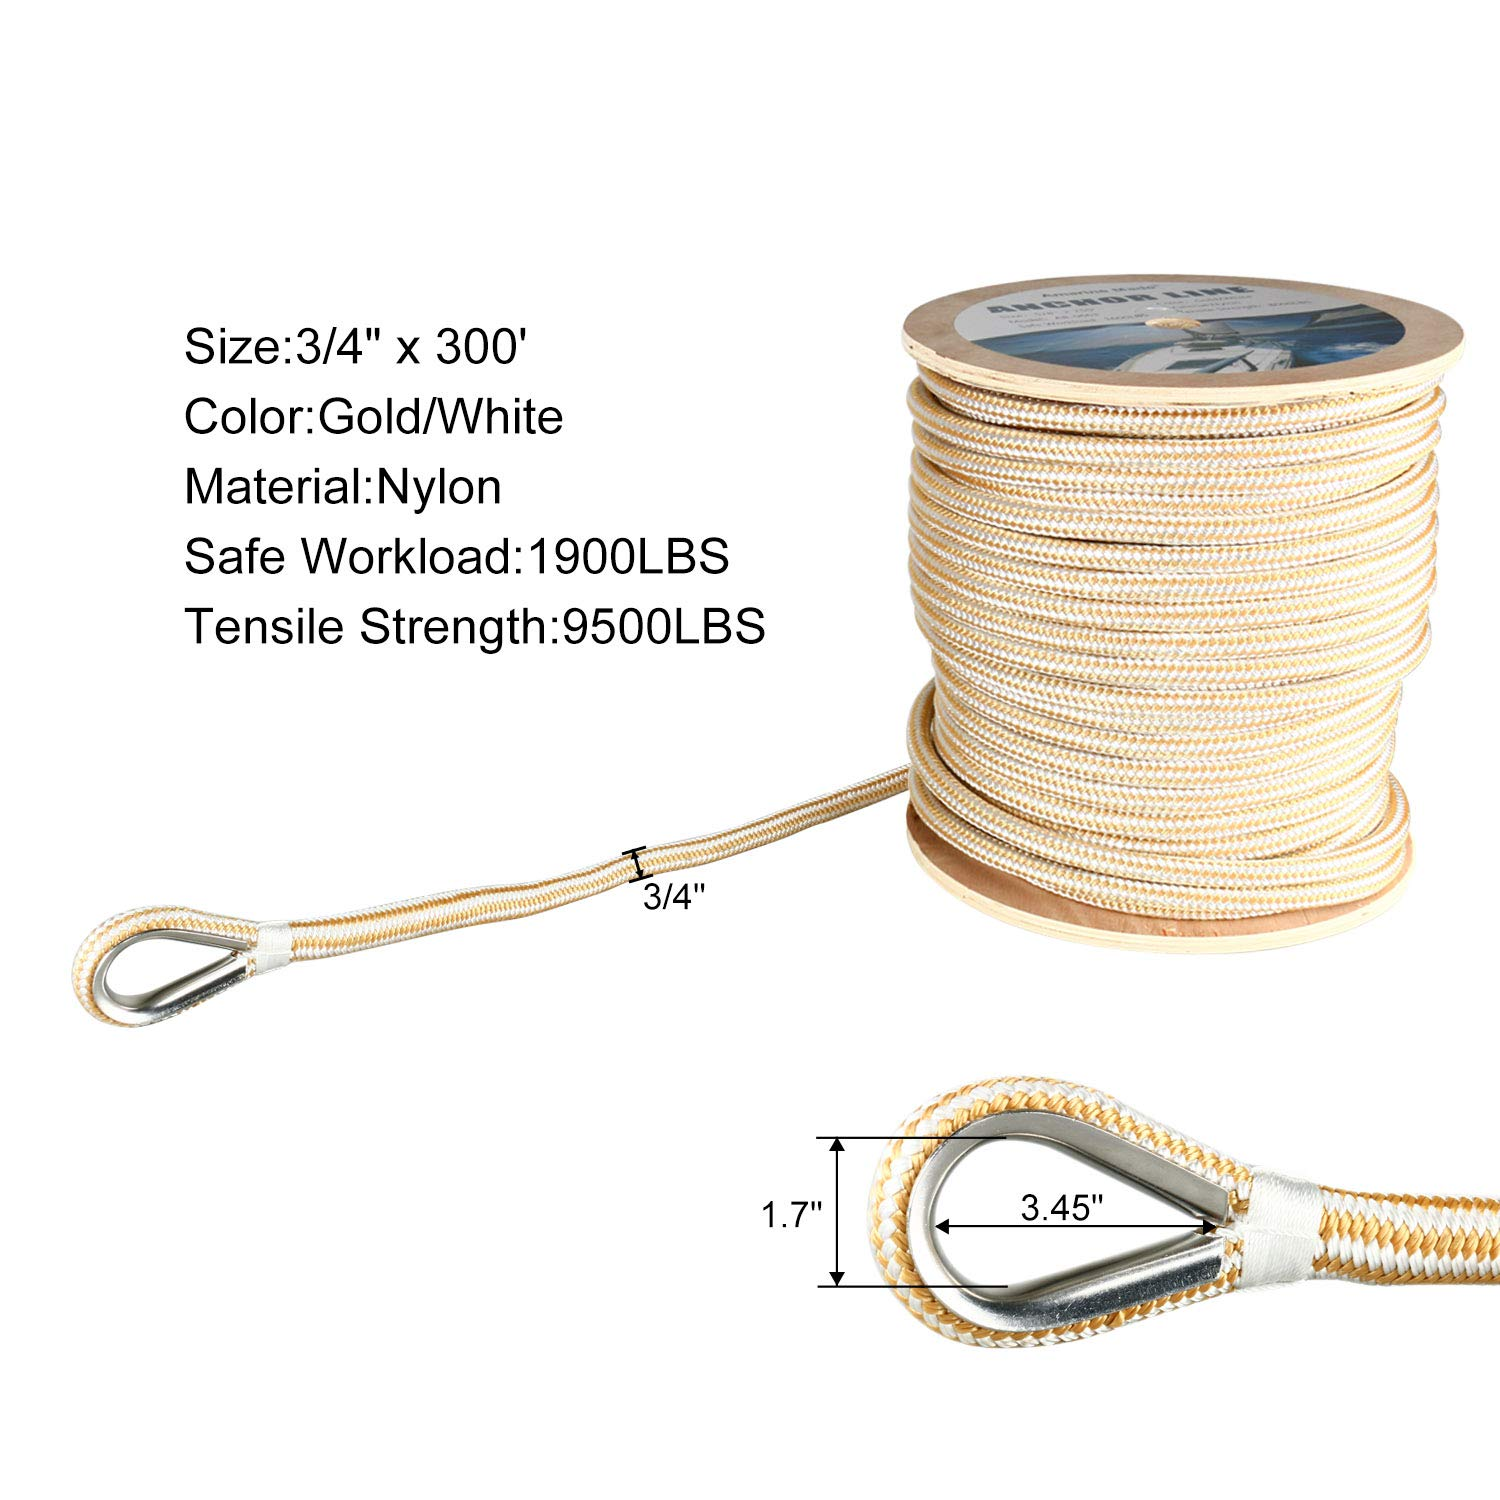 Amarine Made Heavy Duty Double Braid Nylon Anchor Line with Stainless Steel Thimble-White/Gold (3/4'' x 300')